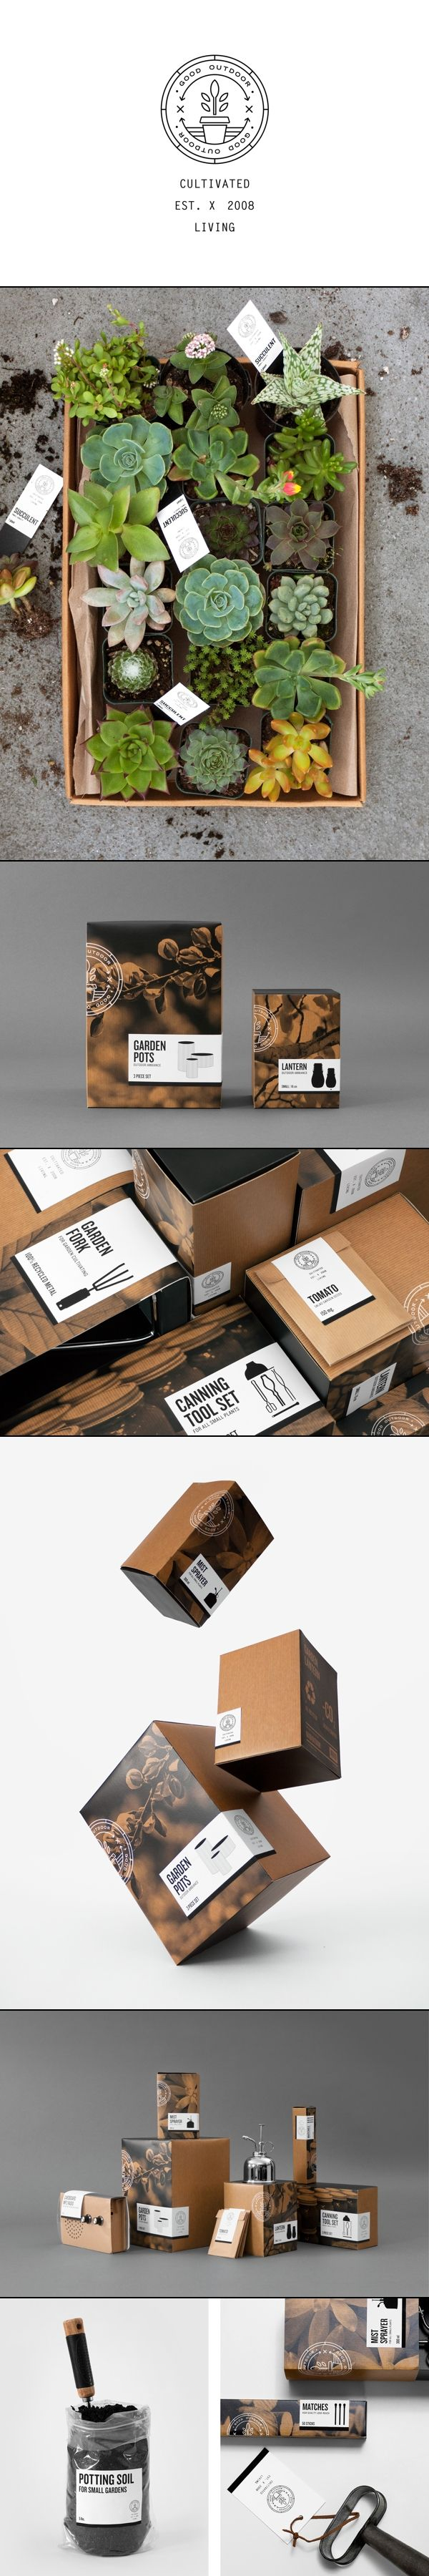 Branding & Packaging ?design company, maybe someone can help with this. Thanks. @Hillary R Design